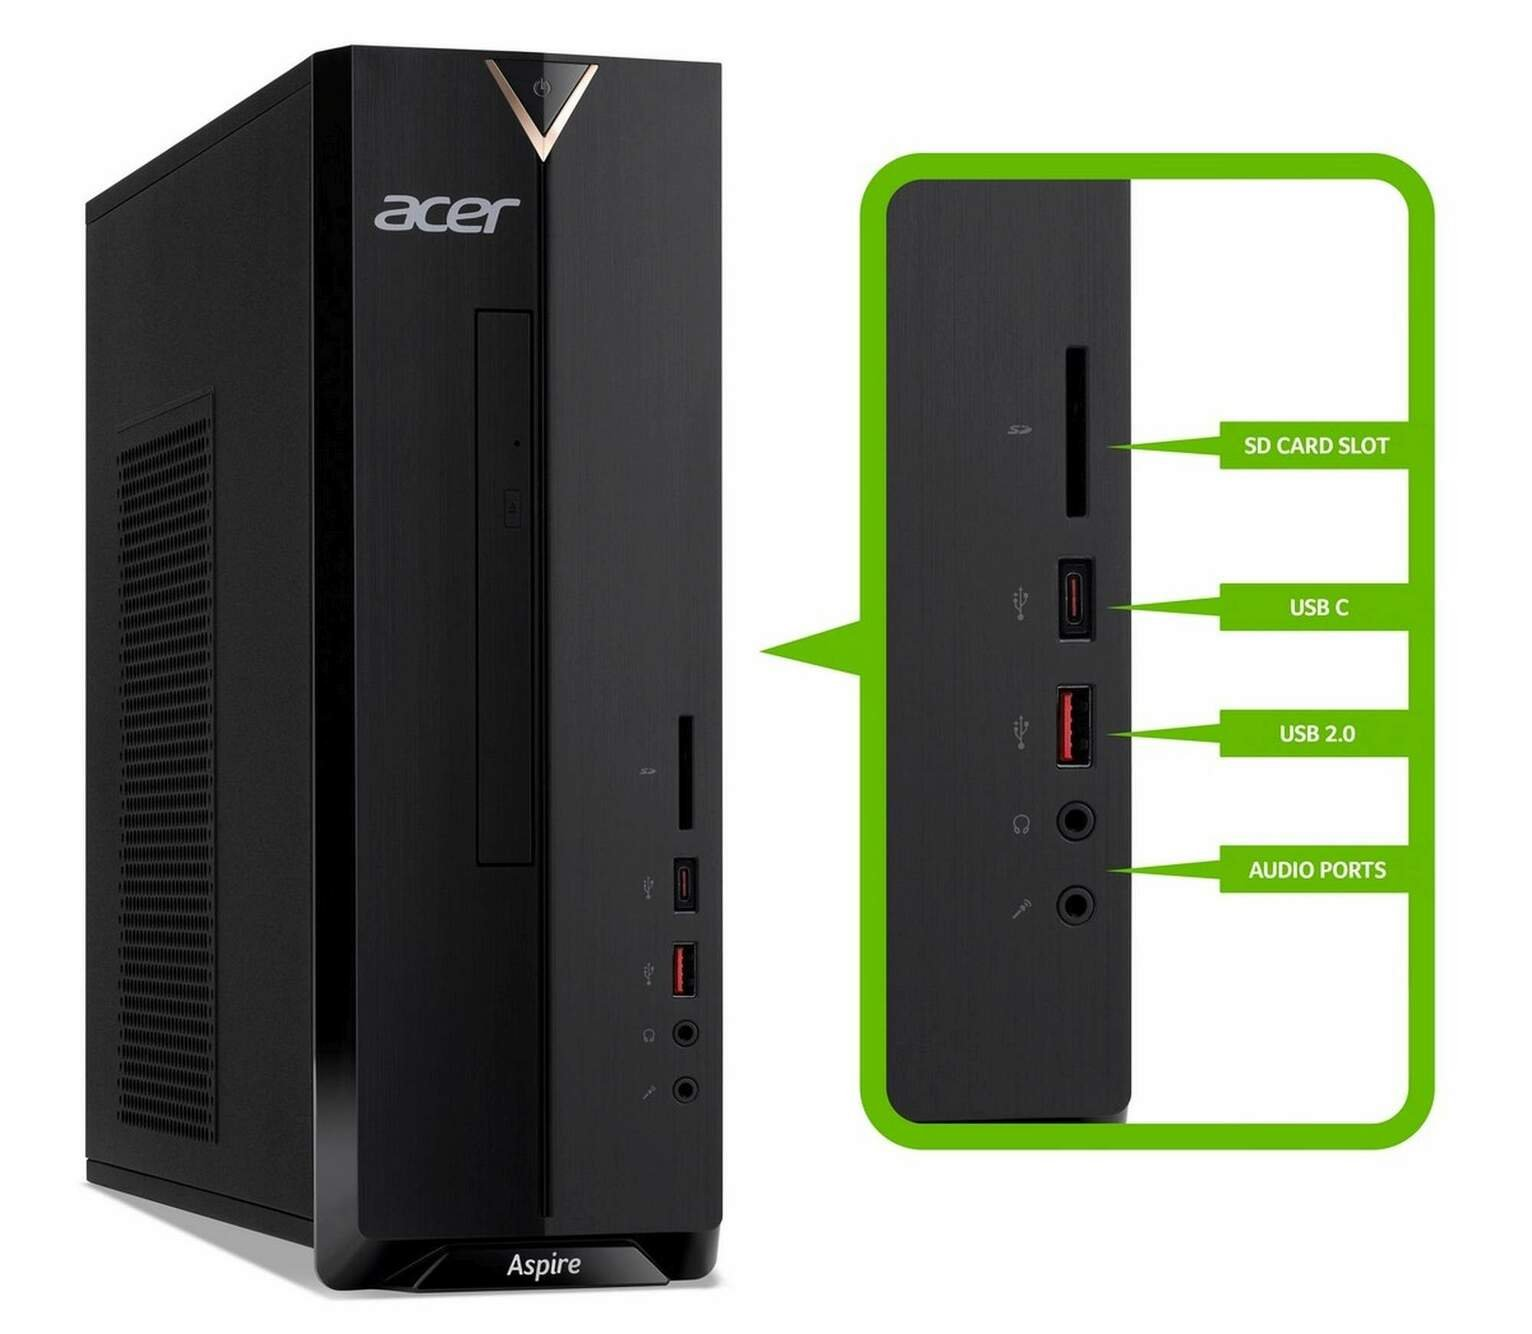 Acer Aspire XC-330 AMD A9 8GB 1TB Desktop PC from Acer